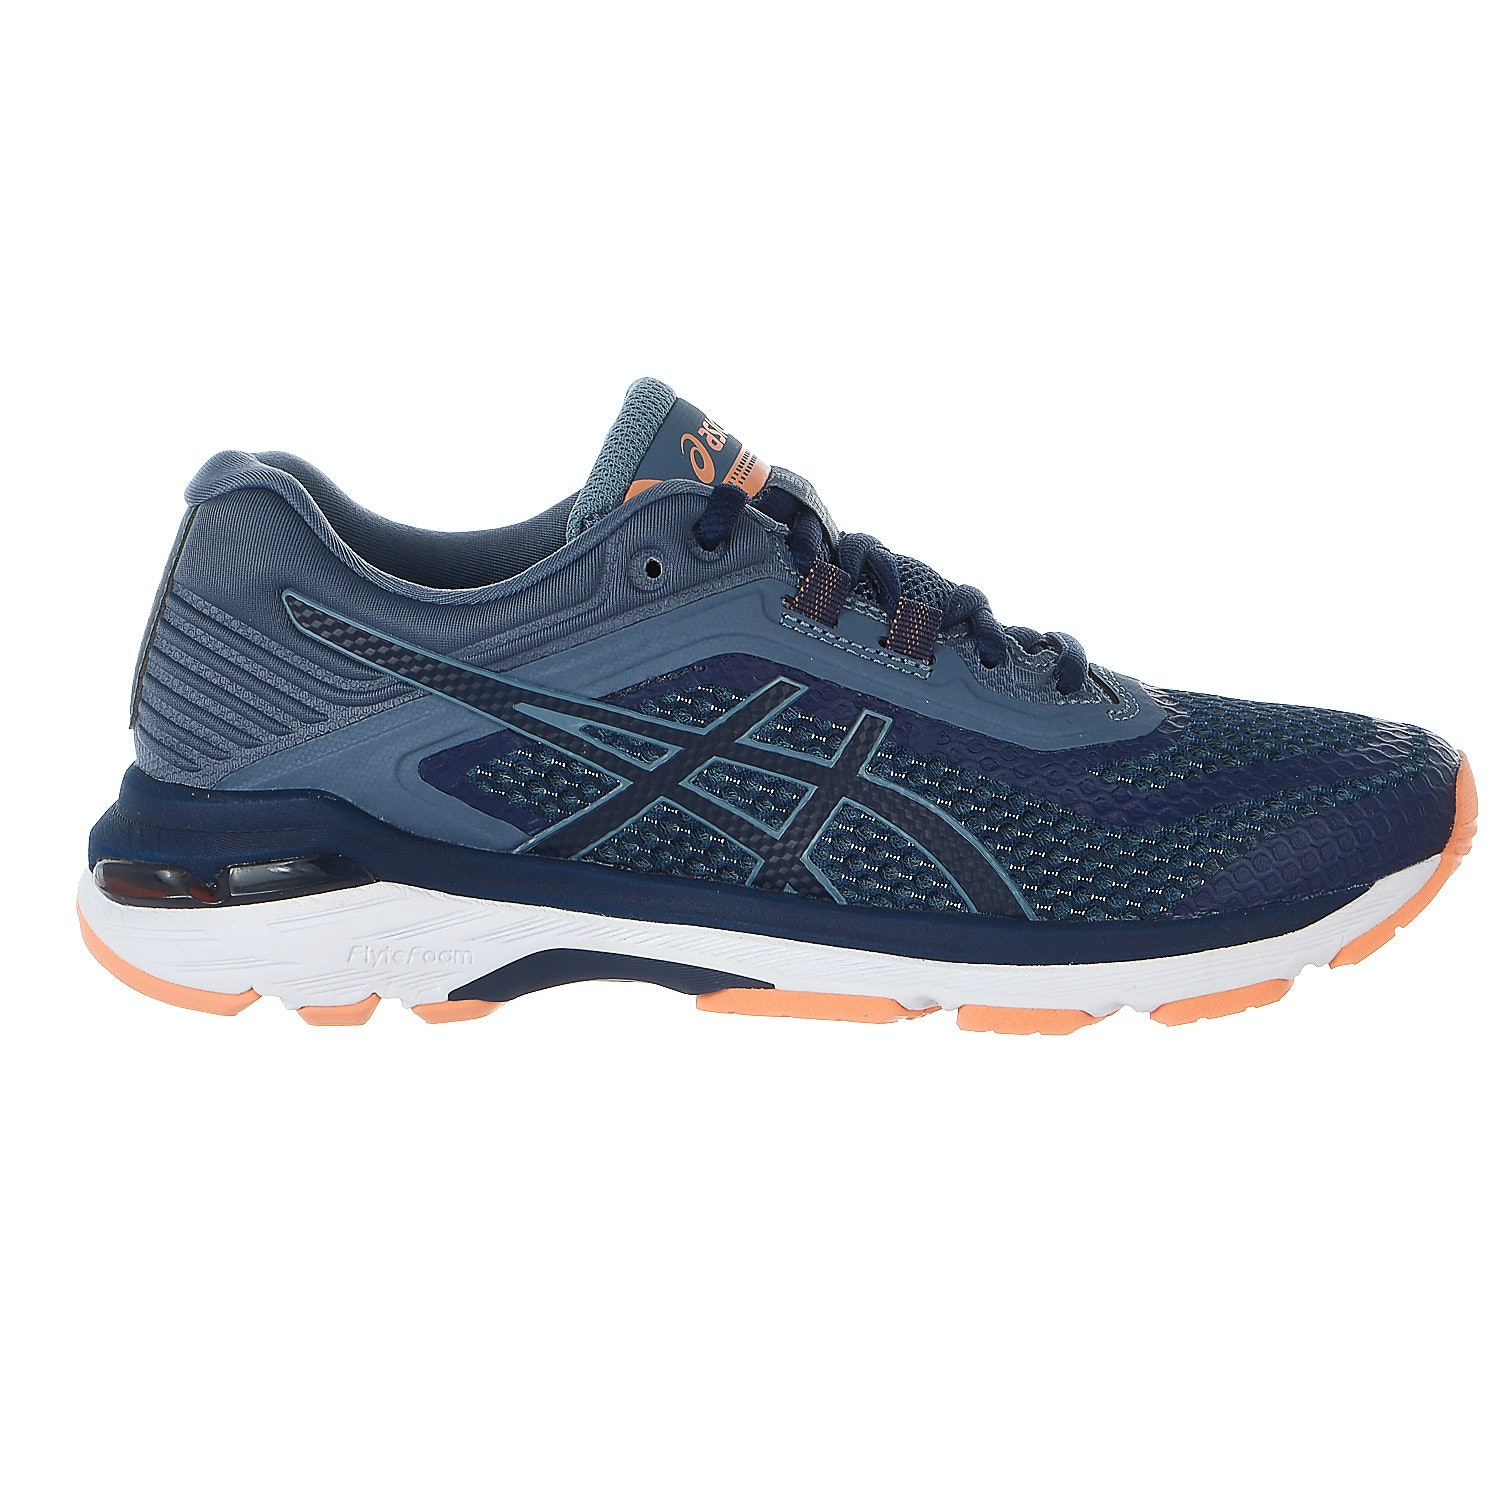 The Best Running Shoes At Walmart For